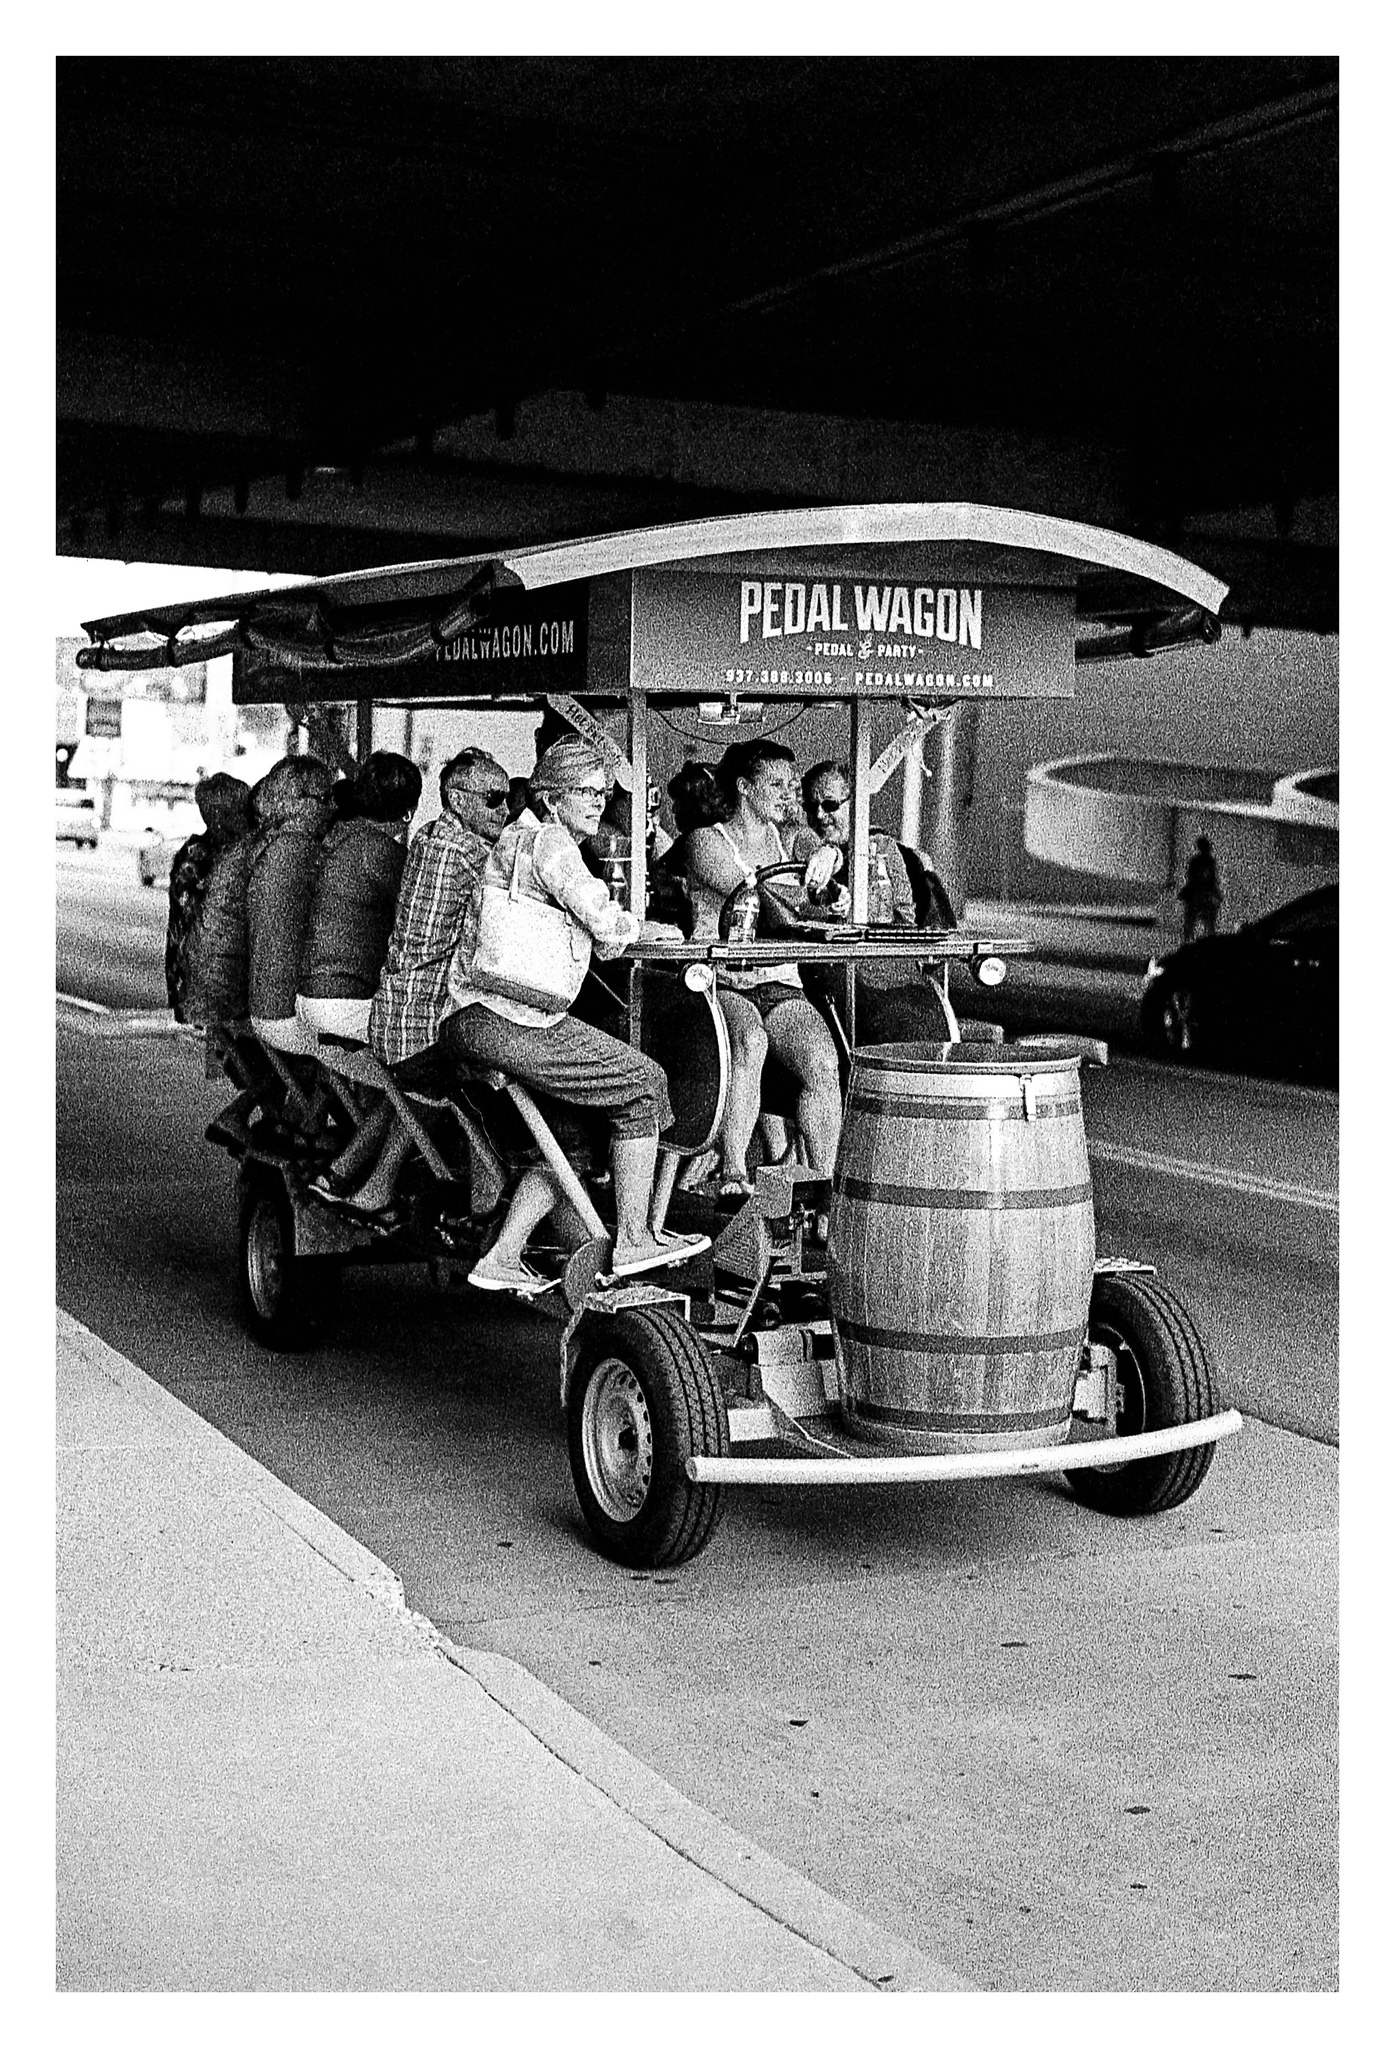 The Pedal Wagon - Nikon F5 with 50mm f/1.4 lens at f/2.8 in A-Priority mode on Kodak TMAX P3200 film